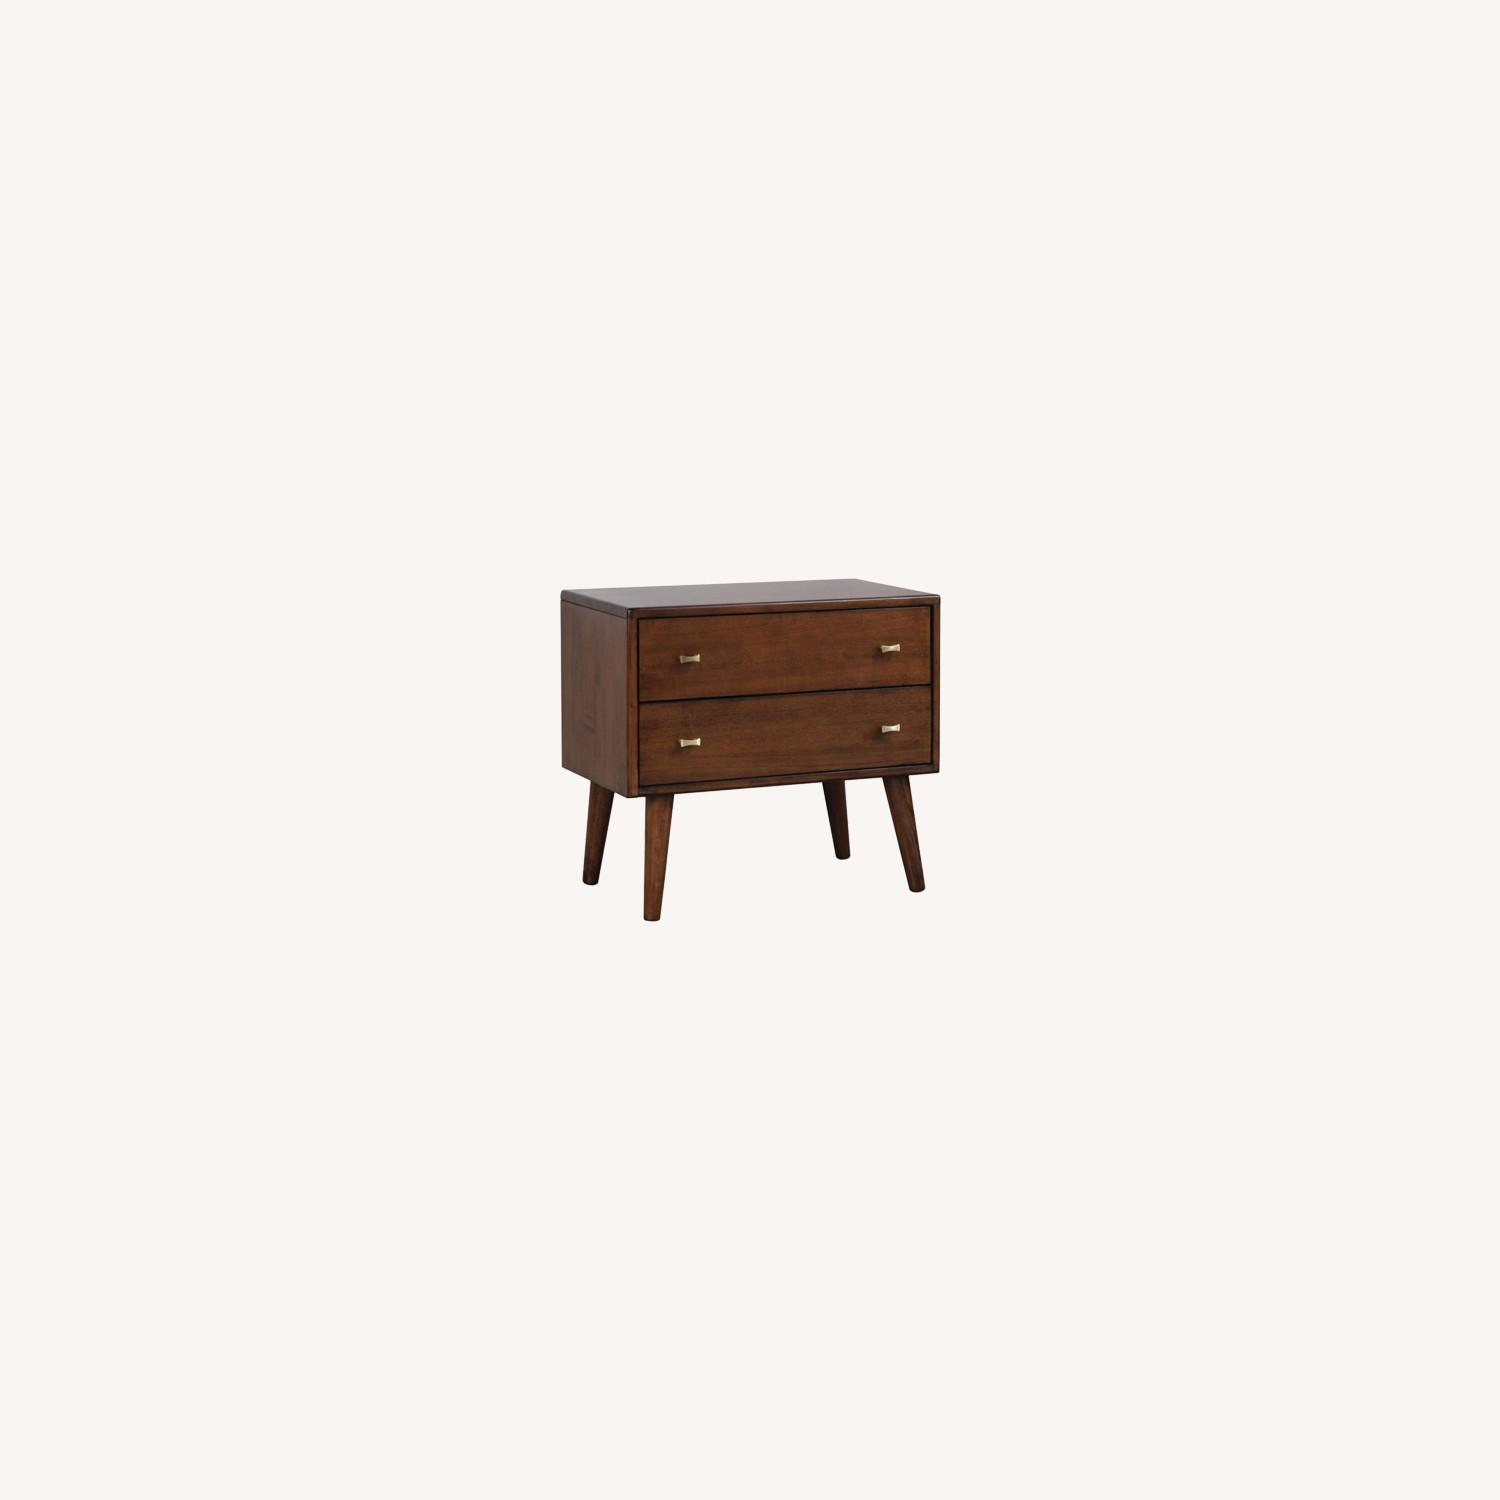 Nightstand W/ Durable Wood In Burnt Sugar Finish - image-3